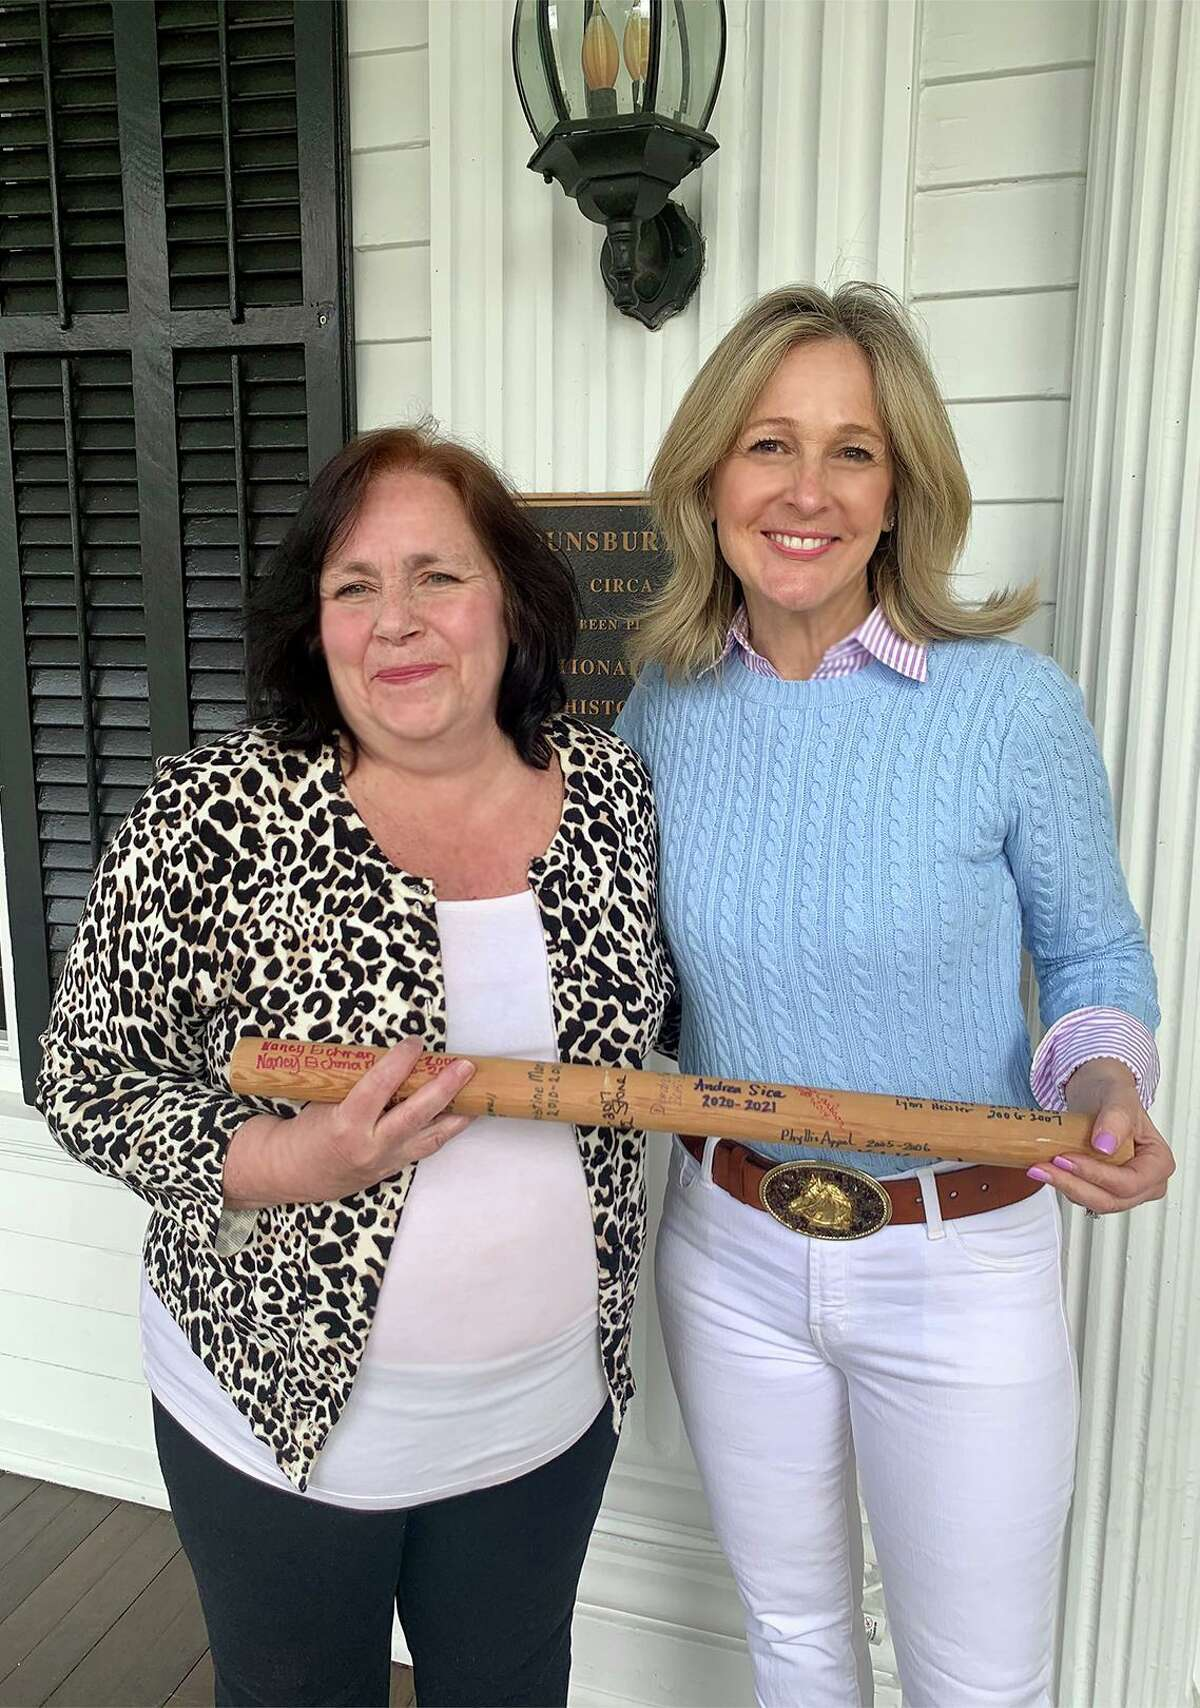 LouAnne Cazalet, left, and Andrea Sica hold a baton that is passed from president to president of the National Charity League's Nutmeg Chapter, which is celebrating its 20th anniversary this year.